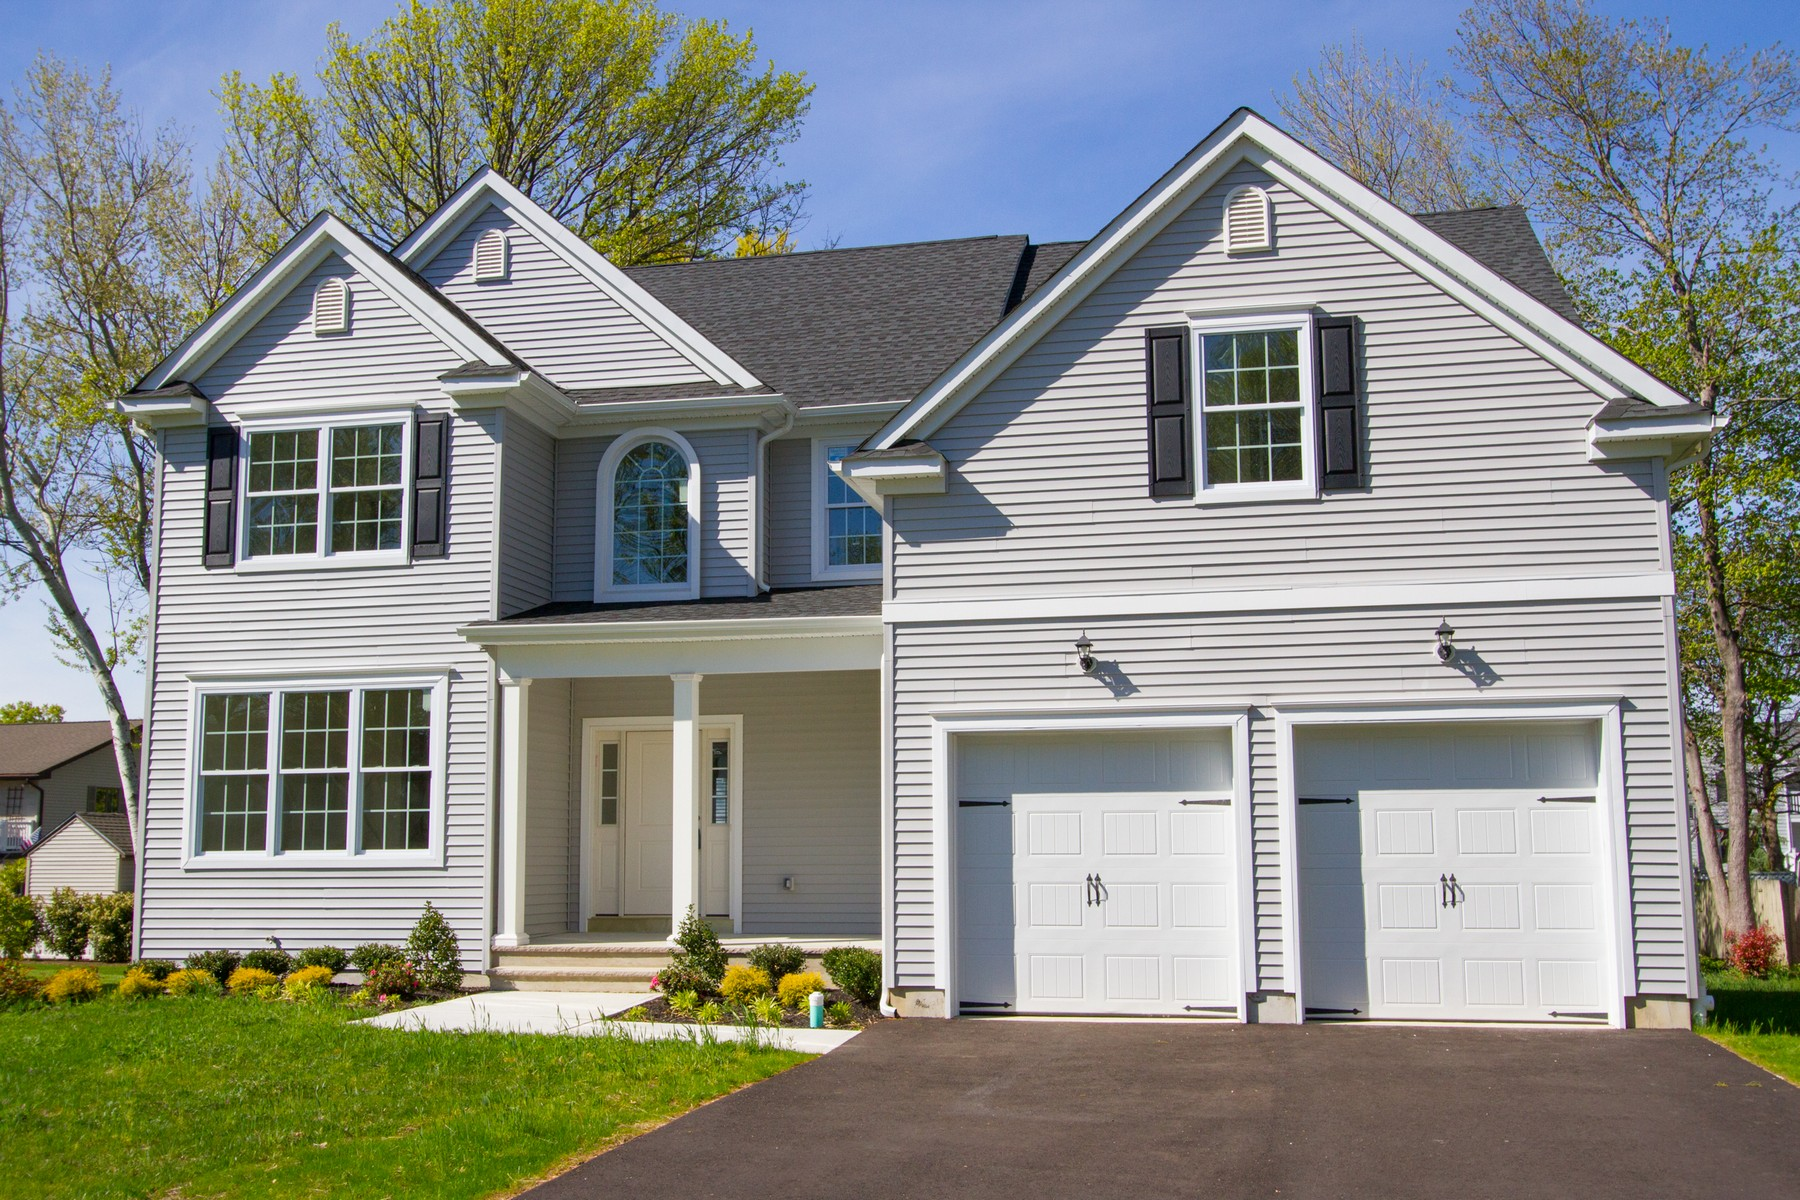 Single Family Home for Sale at Each home needs a proper frame 83 Hiawatha Ave Oceanport, New Jersey, 07757 United States